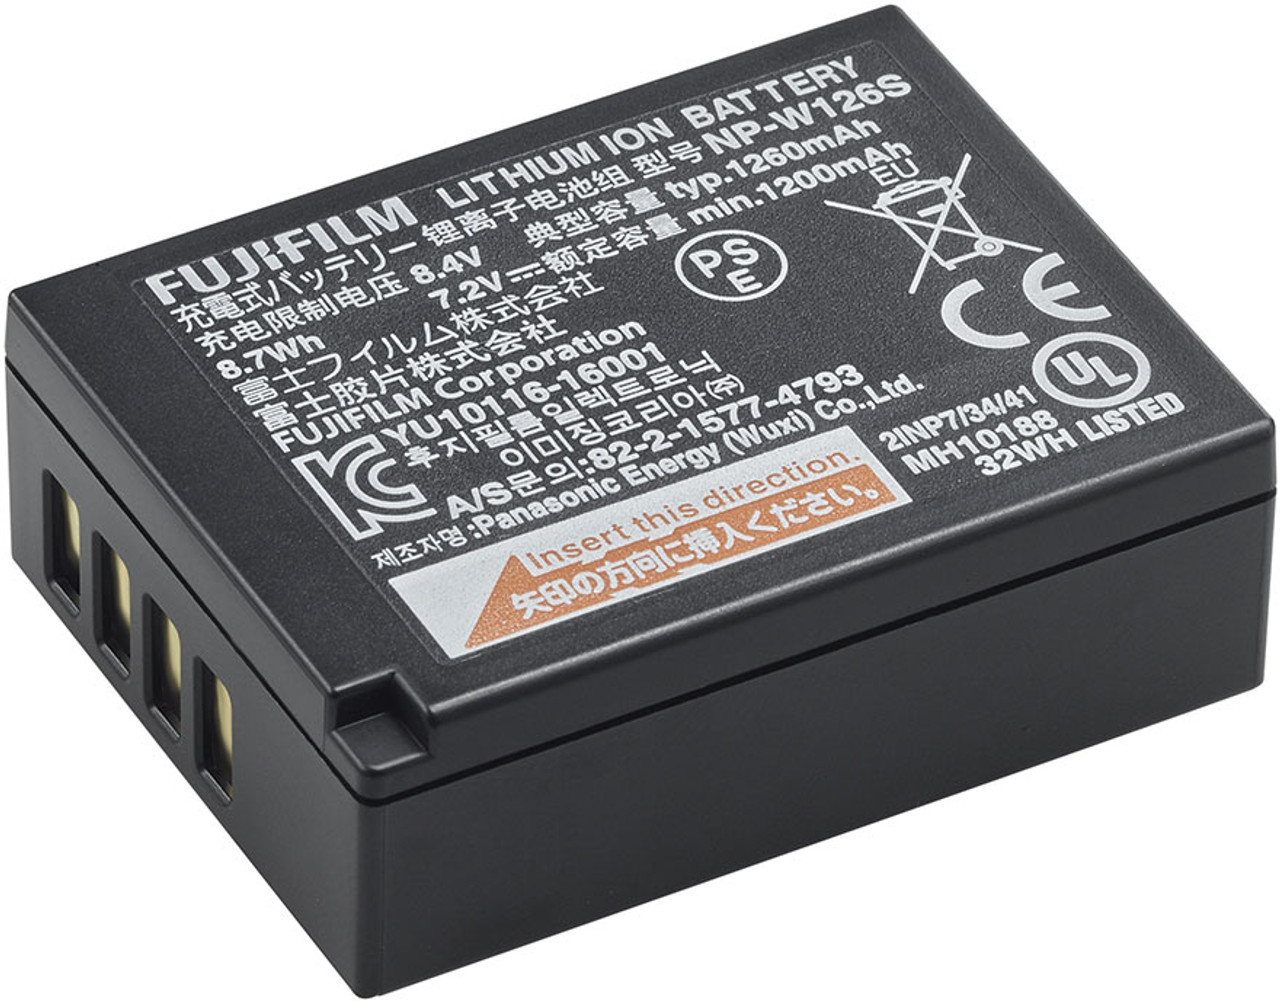 Fujifilm NP-W126S Lithium-Ion Battery